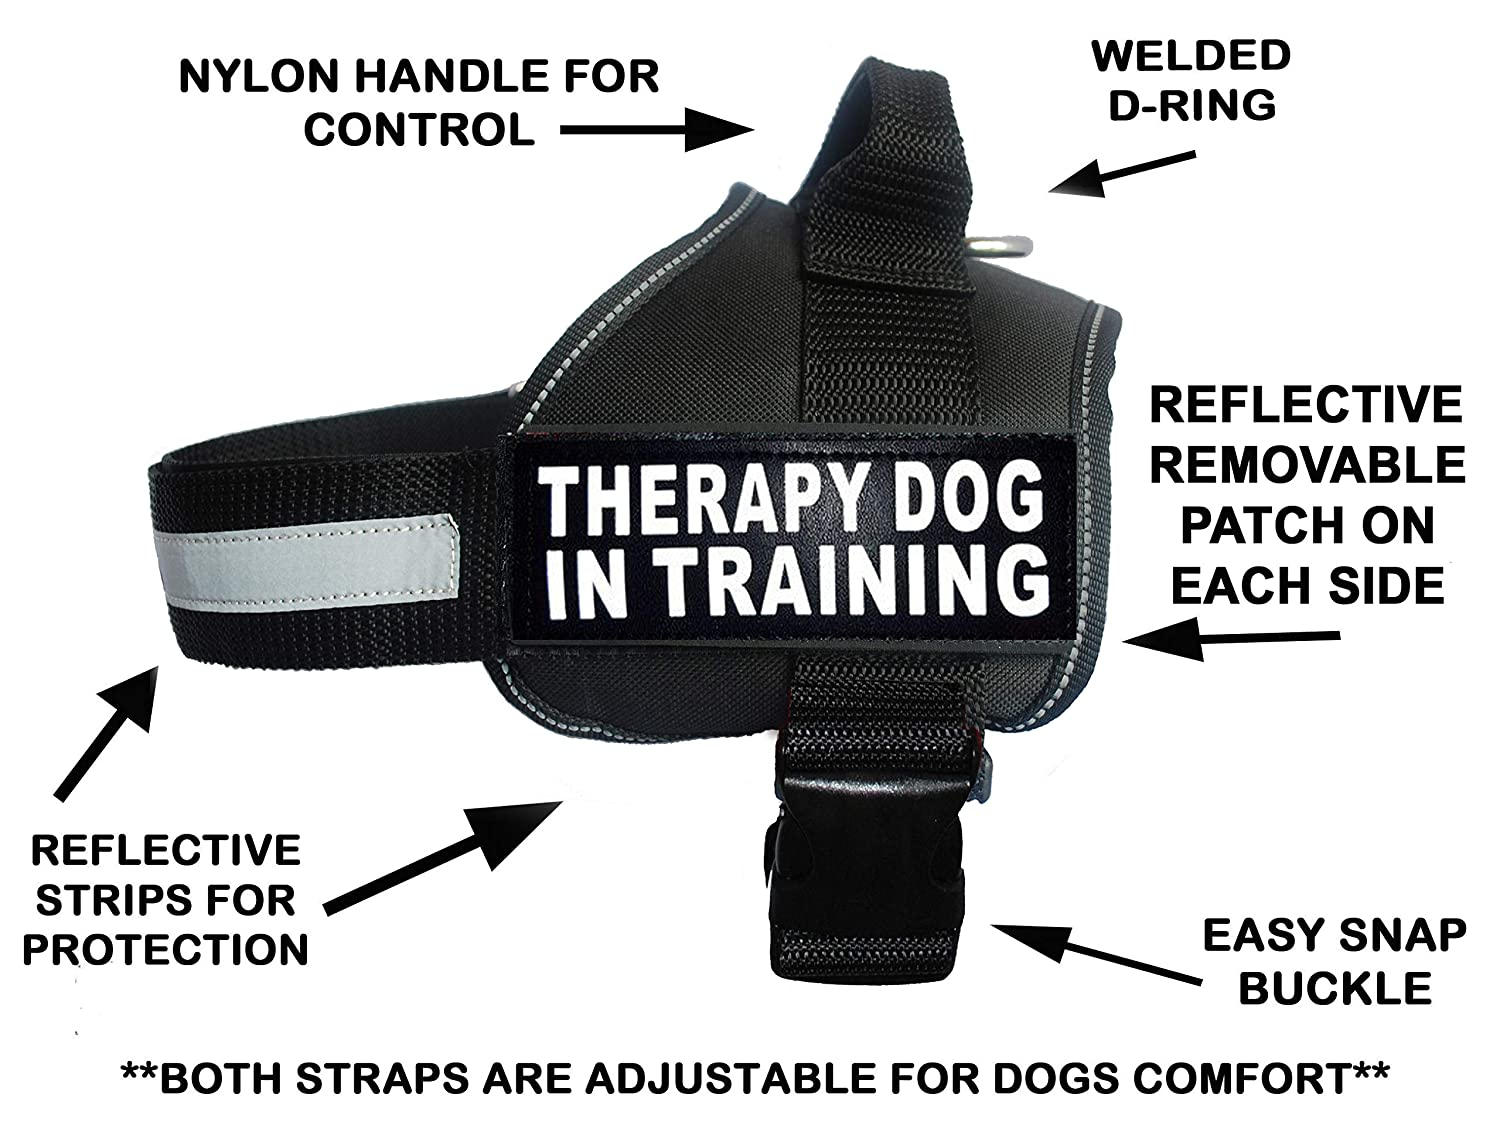 Black Girth 30-42\ Black Girth 30-42\ Therapy Dog in Training Nylon Dog Vest Harness. Purchase Comes with 2 Reflective Therapy Dog in Training pathces. Please Measure Your Dog Before Ordering (Girth 30-42 , Black)